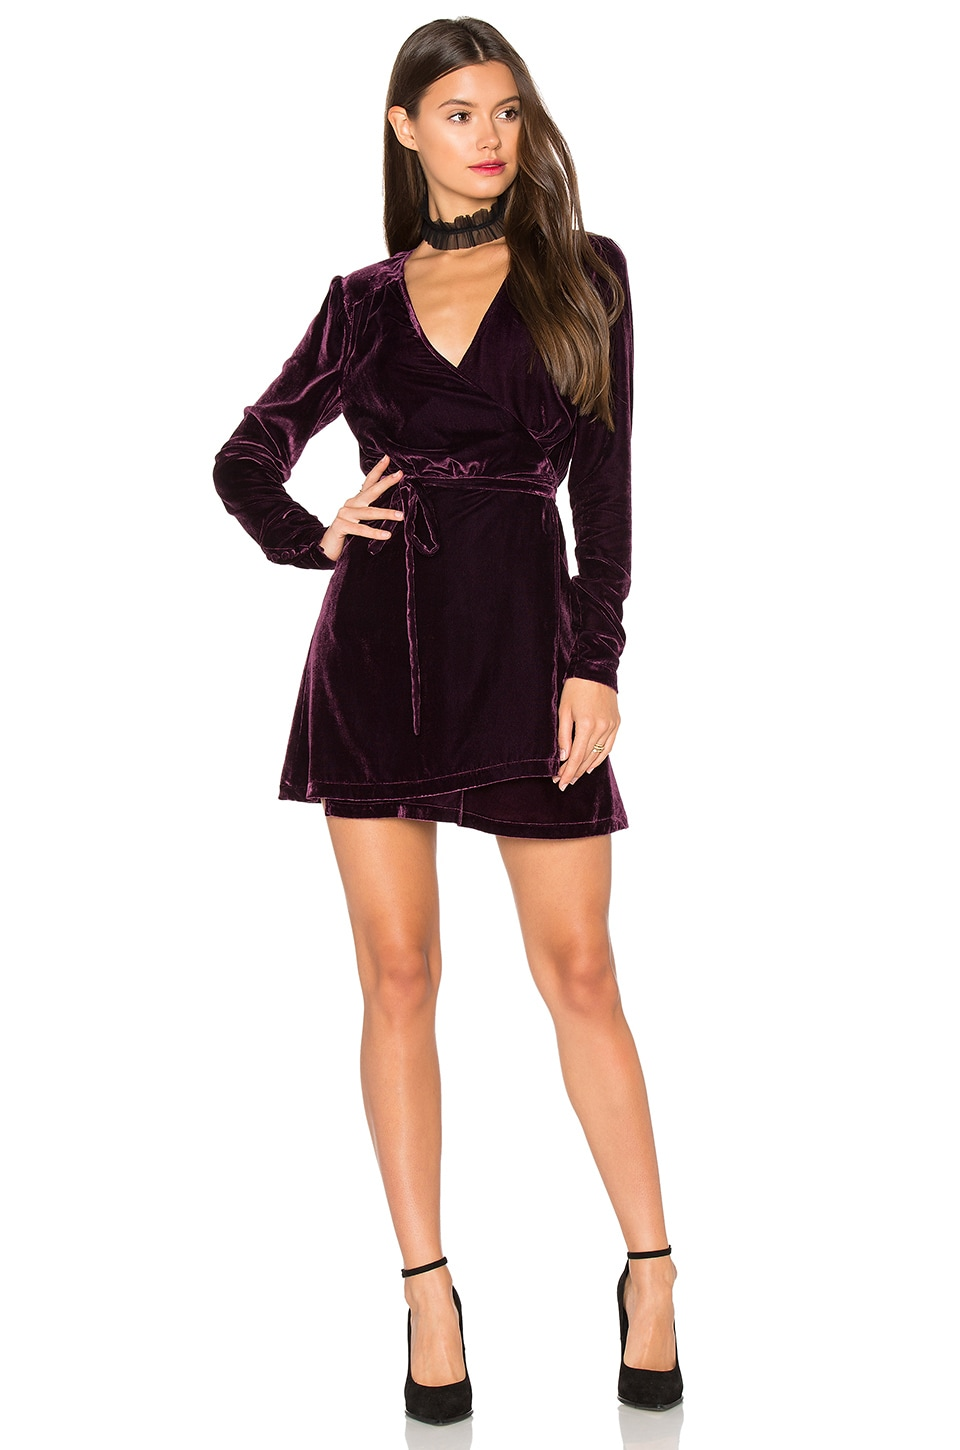 Privacy Please x REVOLVE Astro Dress in Wine